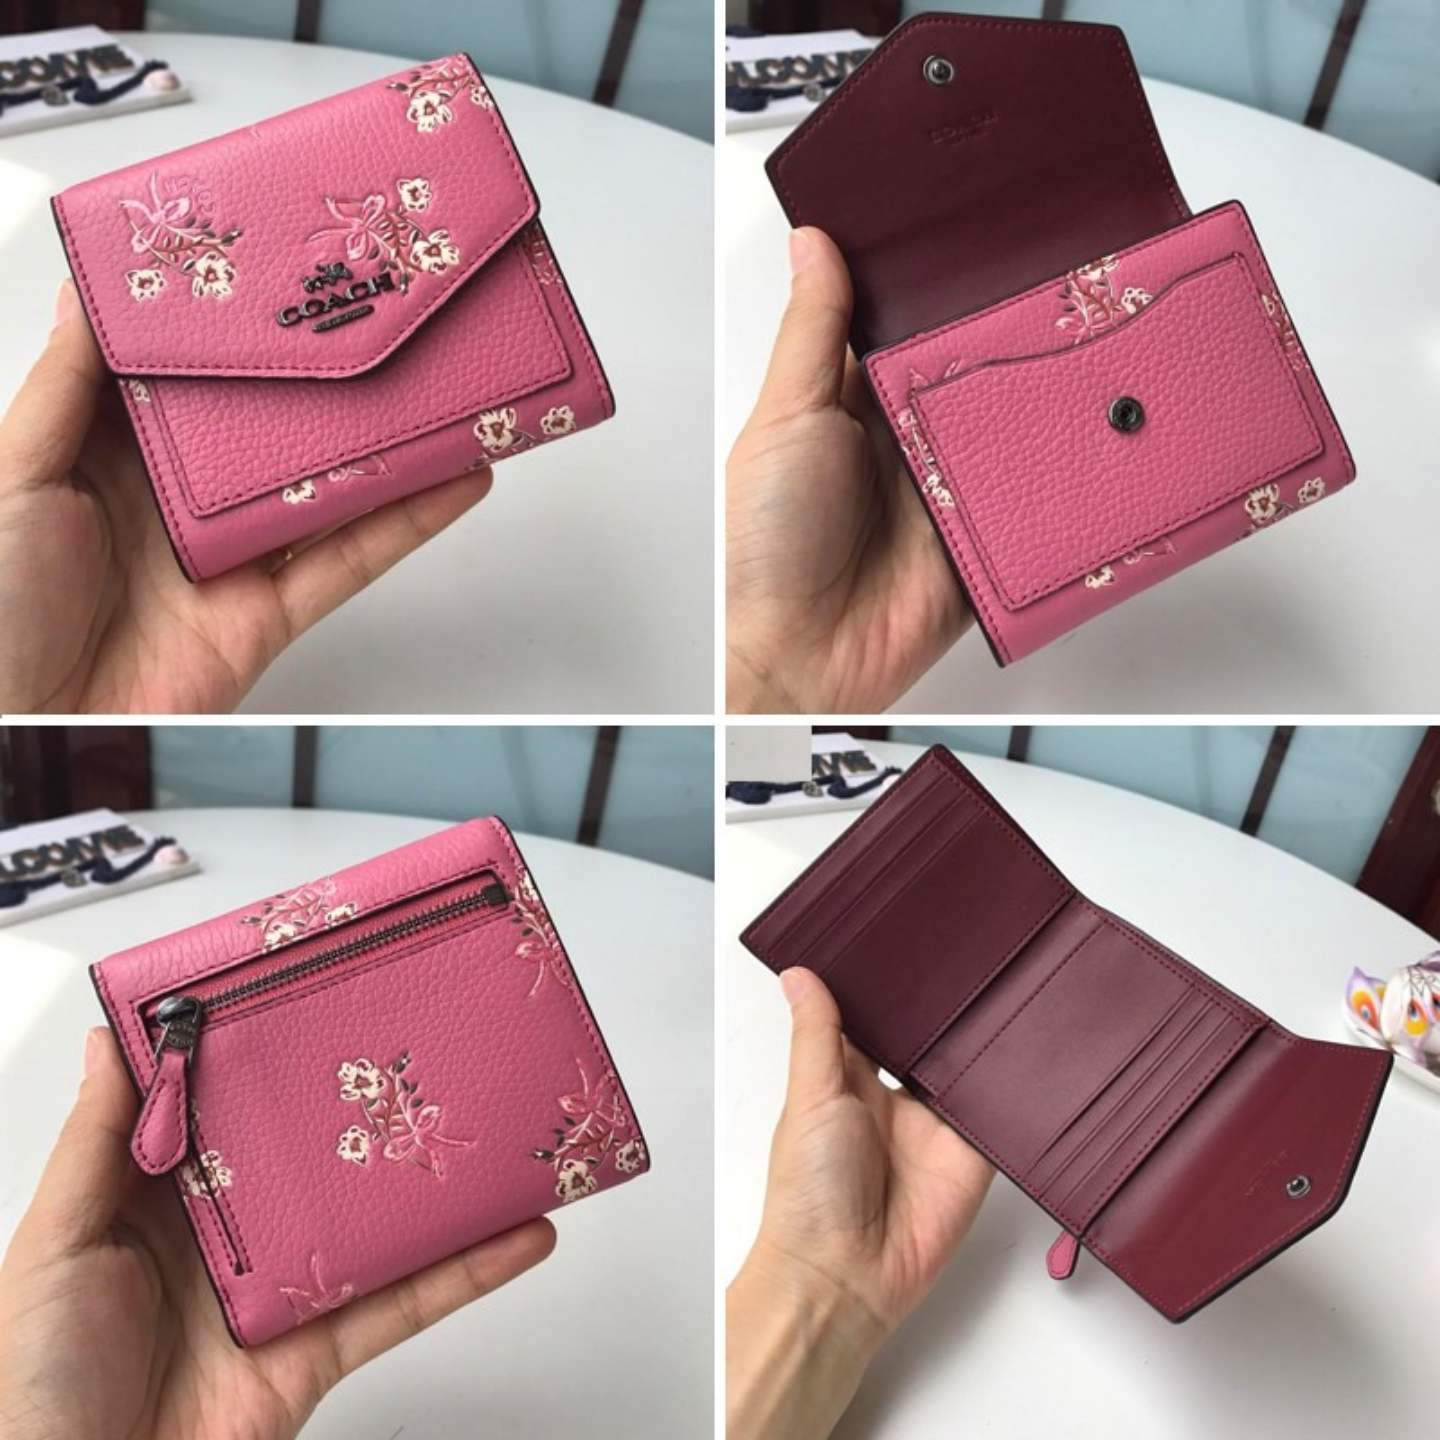 Womens wallets F31548 F28445 F59972 F67246 wallets and cardholder short wallets fashion wallets